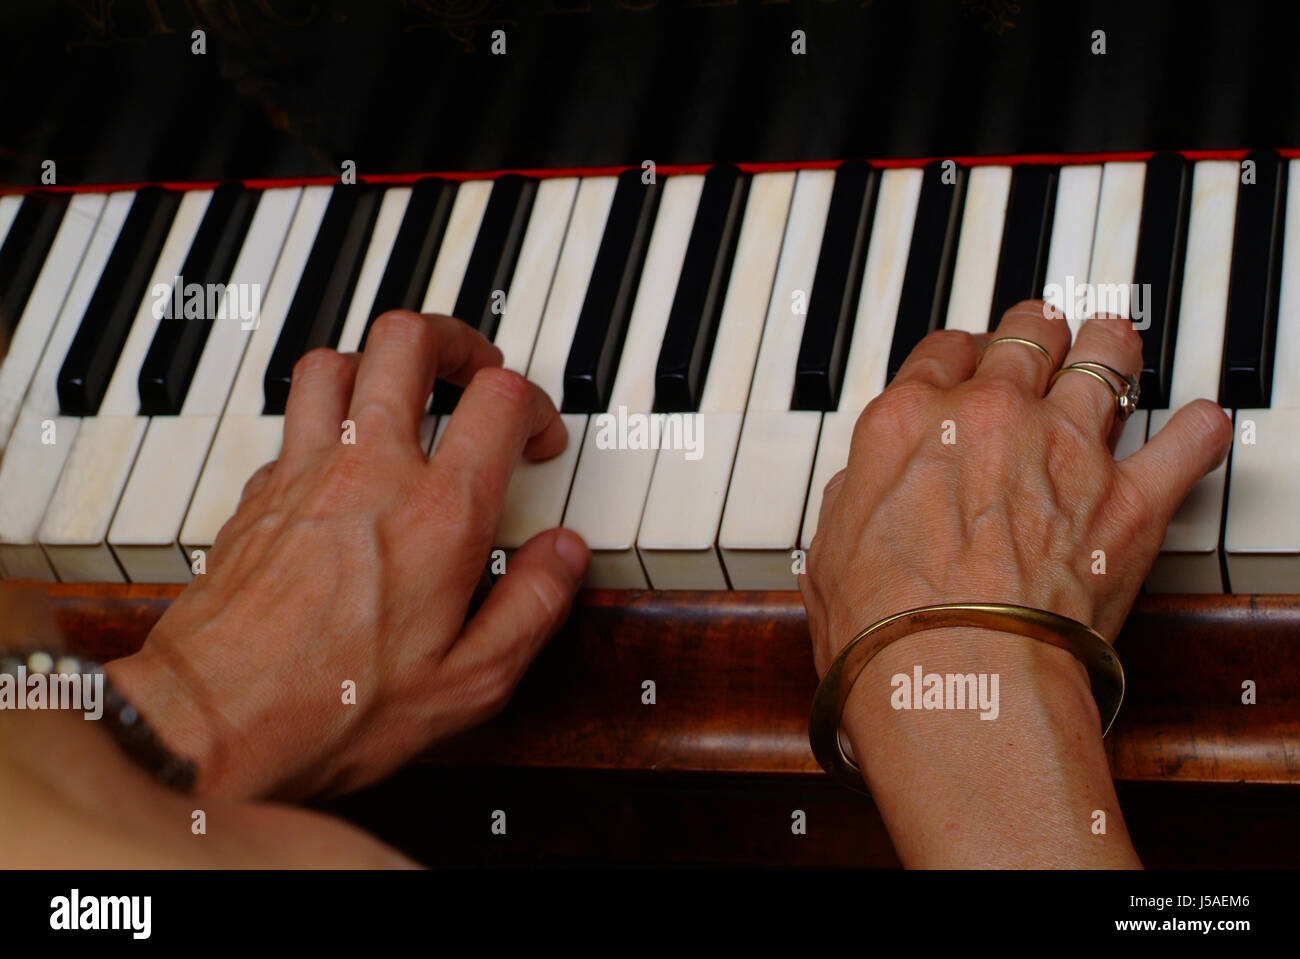 Music Keyboard Woman Stock Photos & Music Keyboard Woman